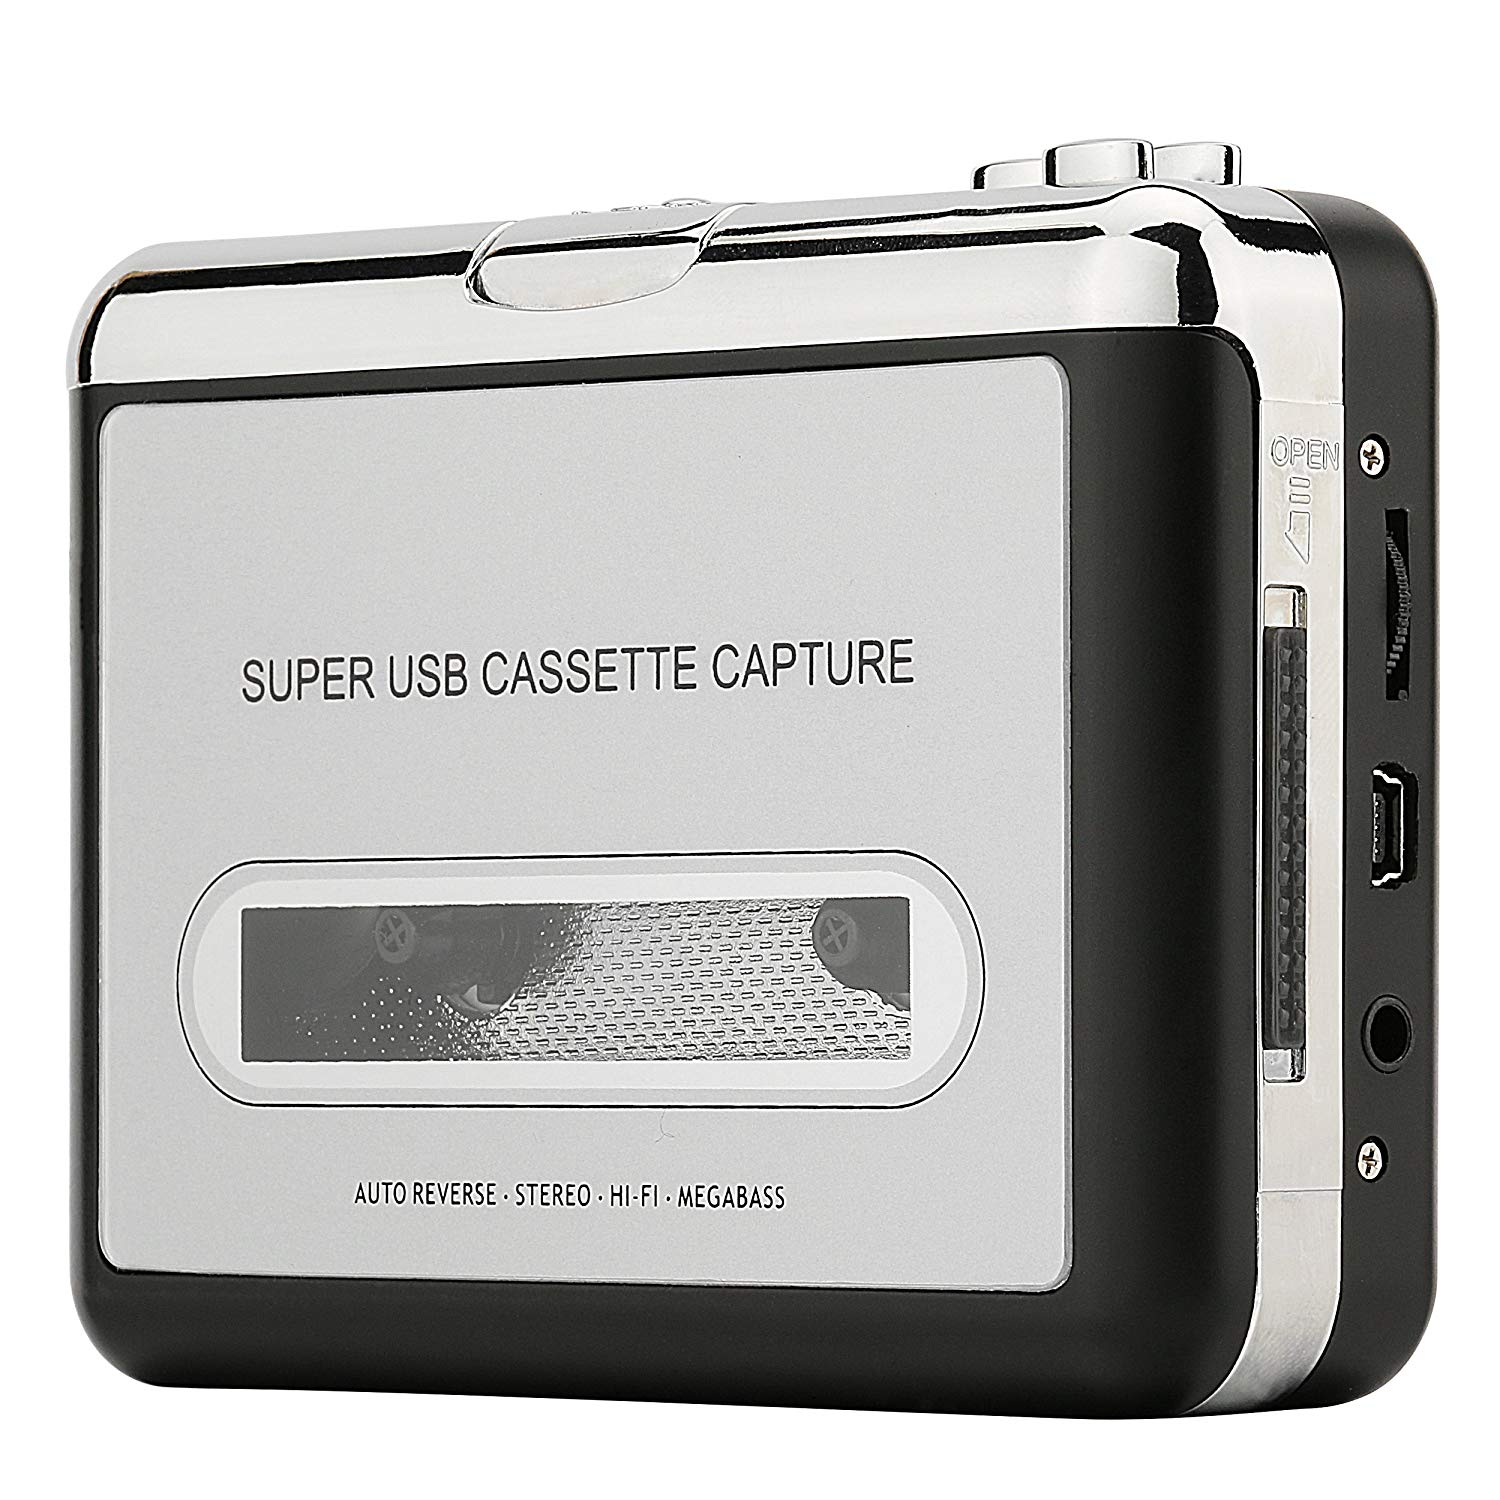 Reshow Cassette Player Review